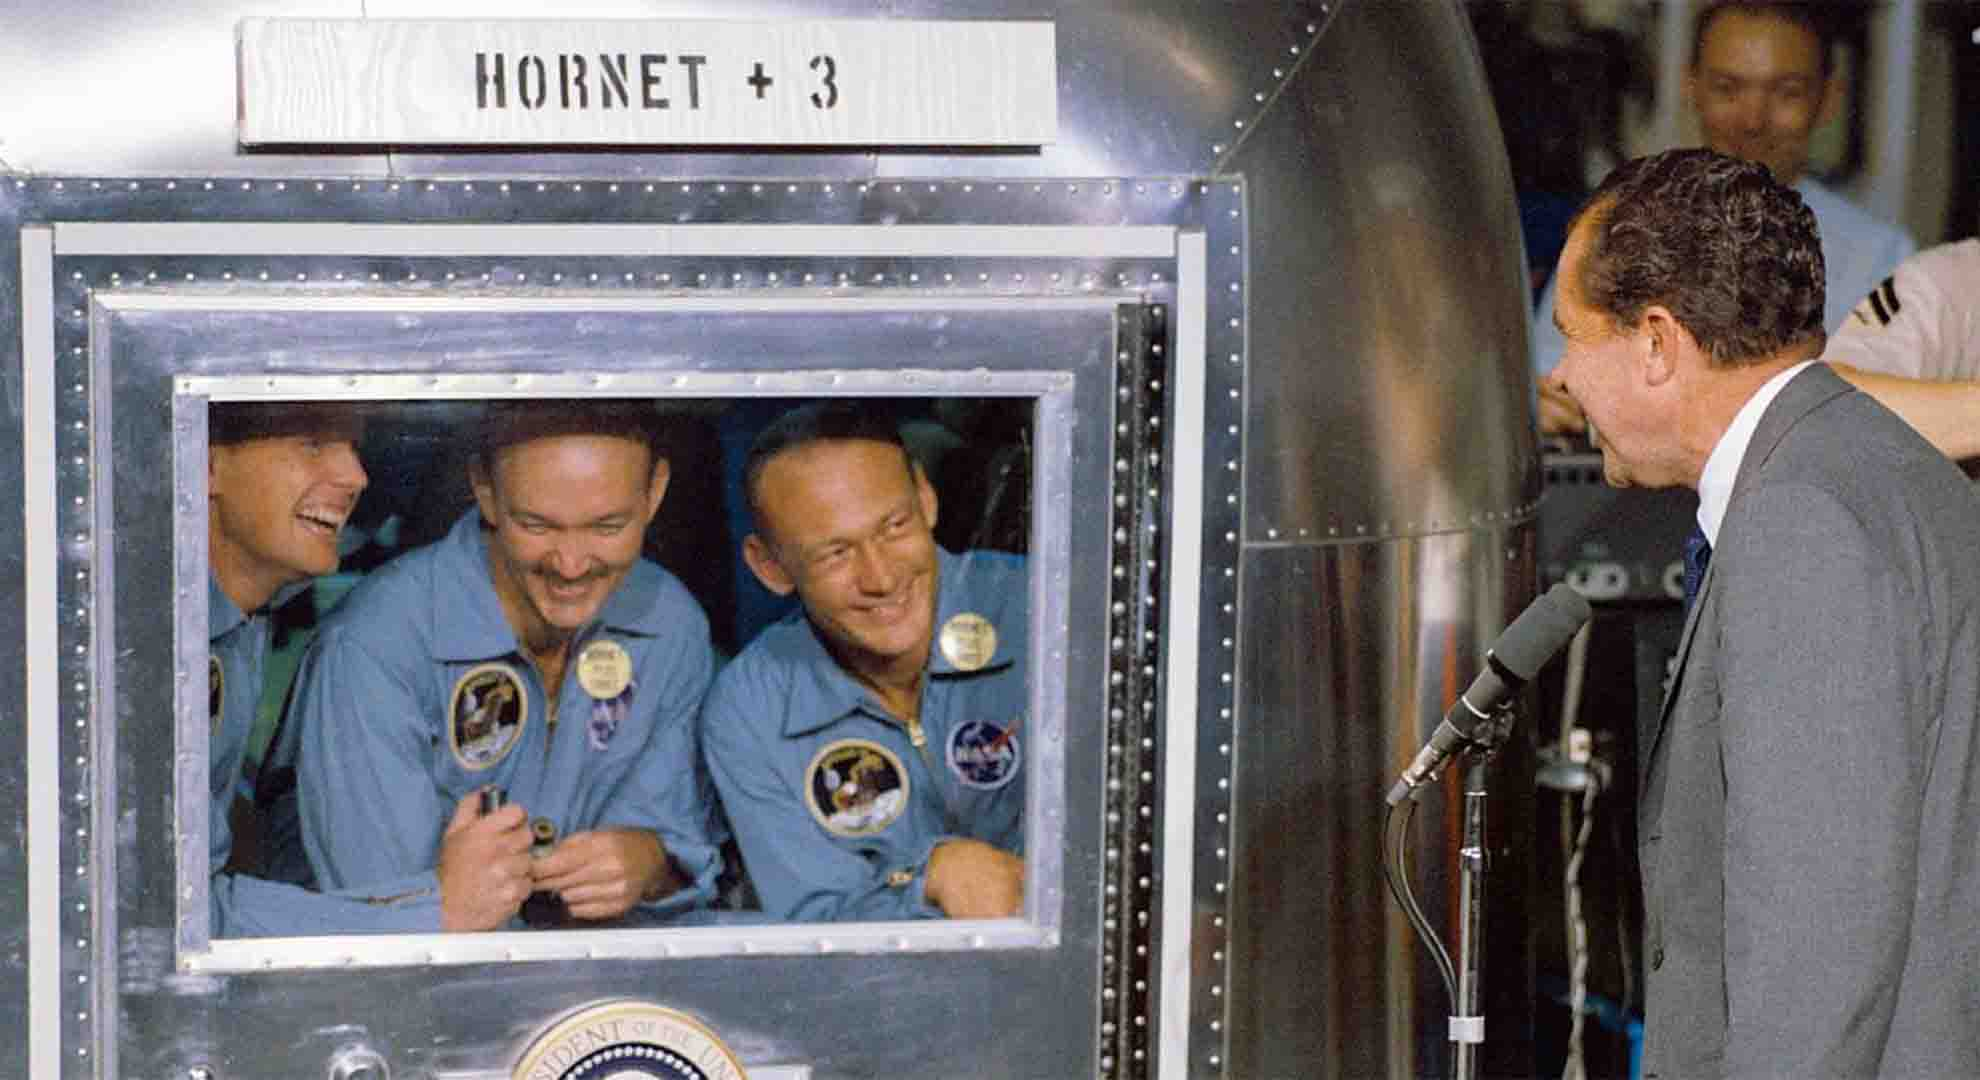 Richard Nixon welcoming the Apollo 11 crew after an outer space mission